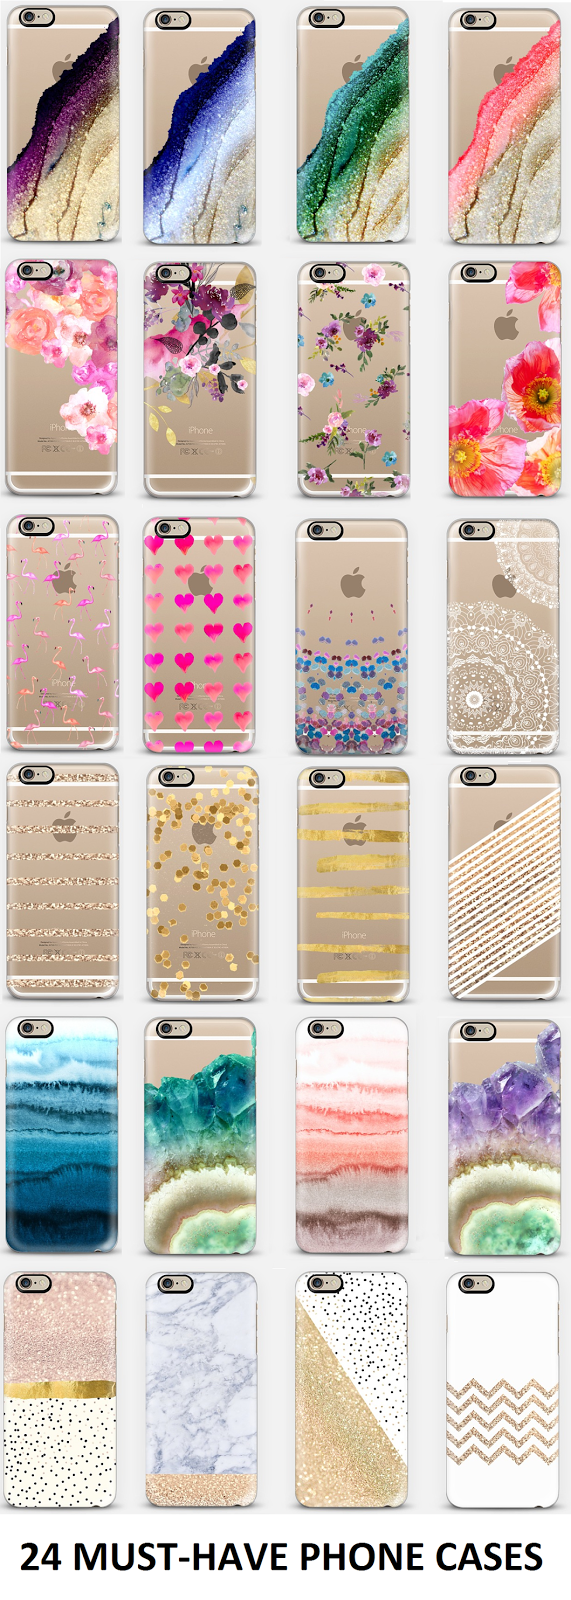 24 Must Have Phone Cases Something Plain Or Mostly Plain Maybe